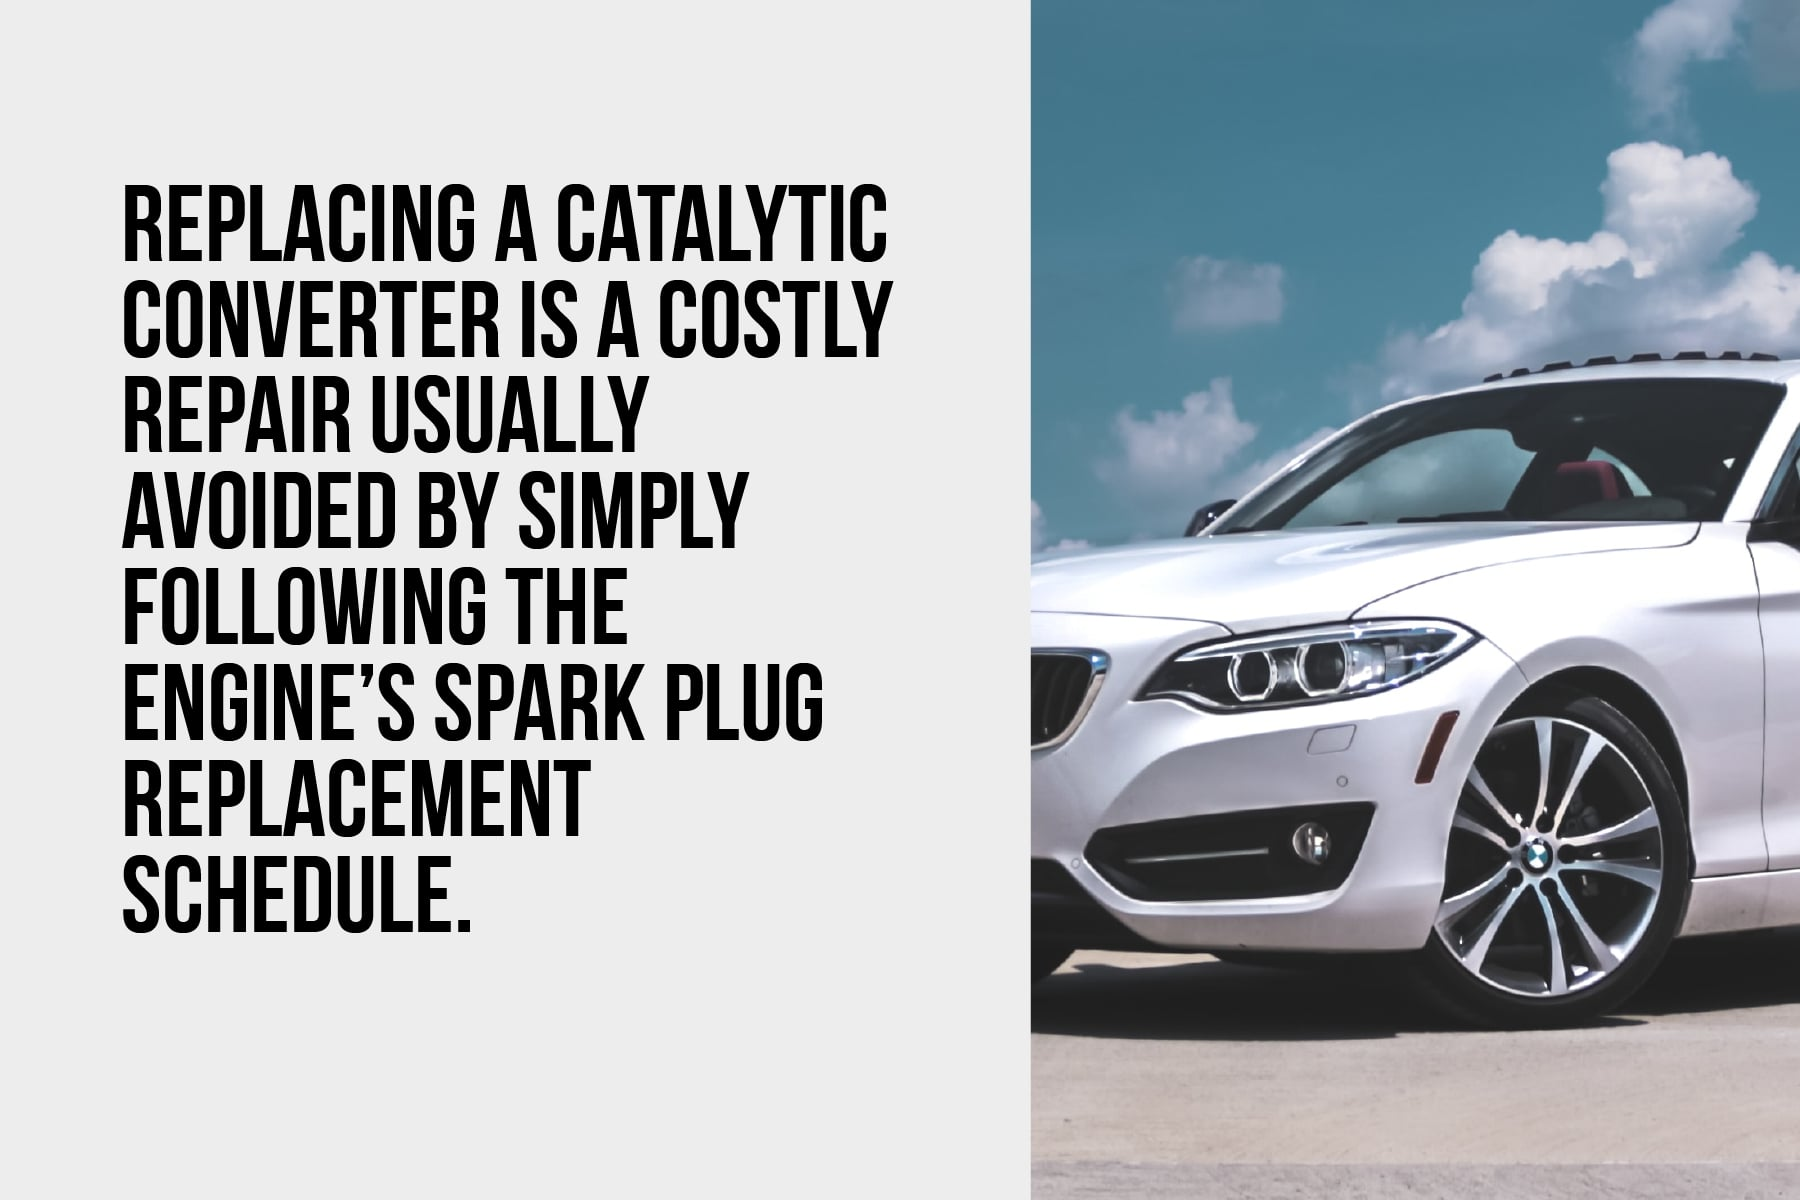 Replacing a BMW catalytic converter is a costly repair